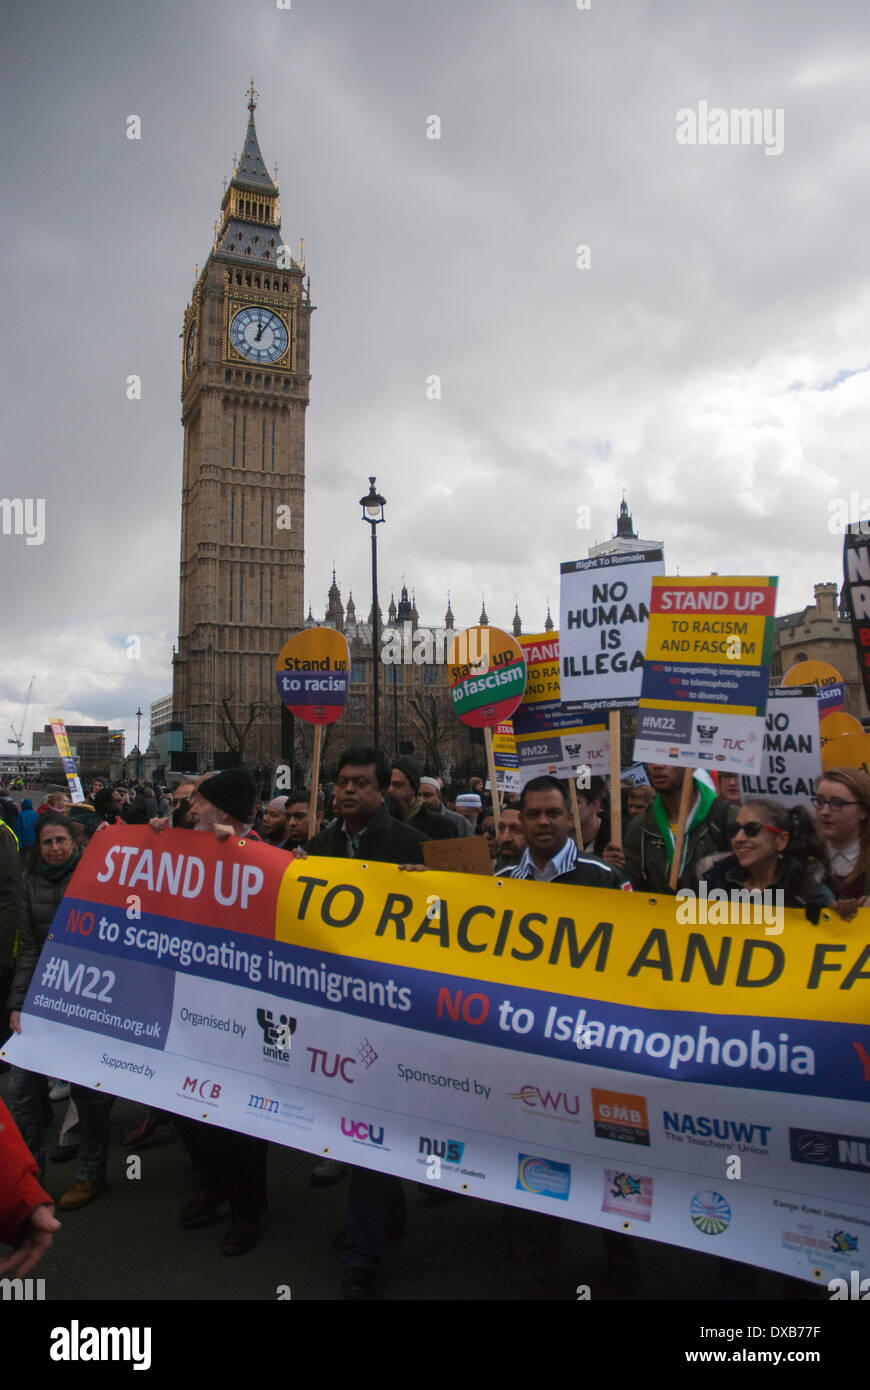 London, UK. 22nd March 2014. The Anti-Racism rally marches past London's iconic Big Ben clock tower. Credit:  Peter Manning/Alamy Live News - Stock Image